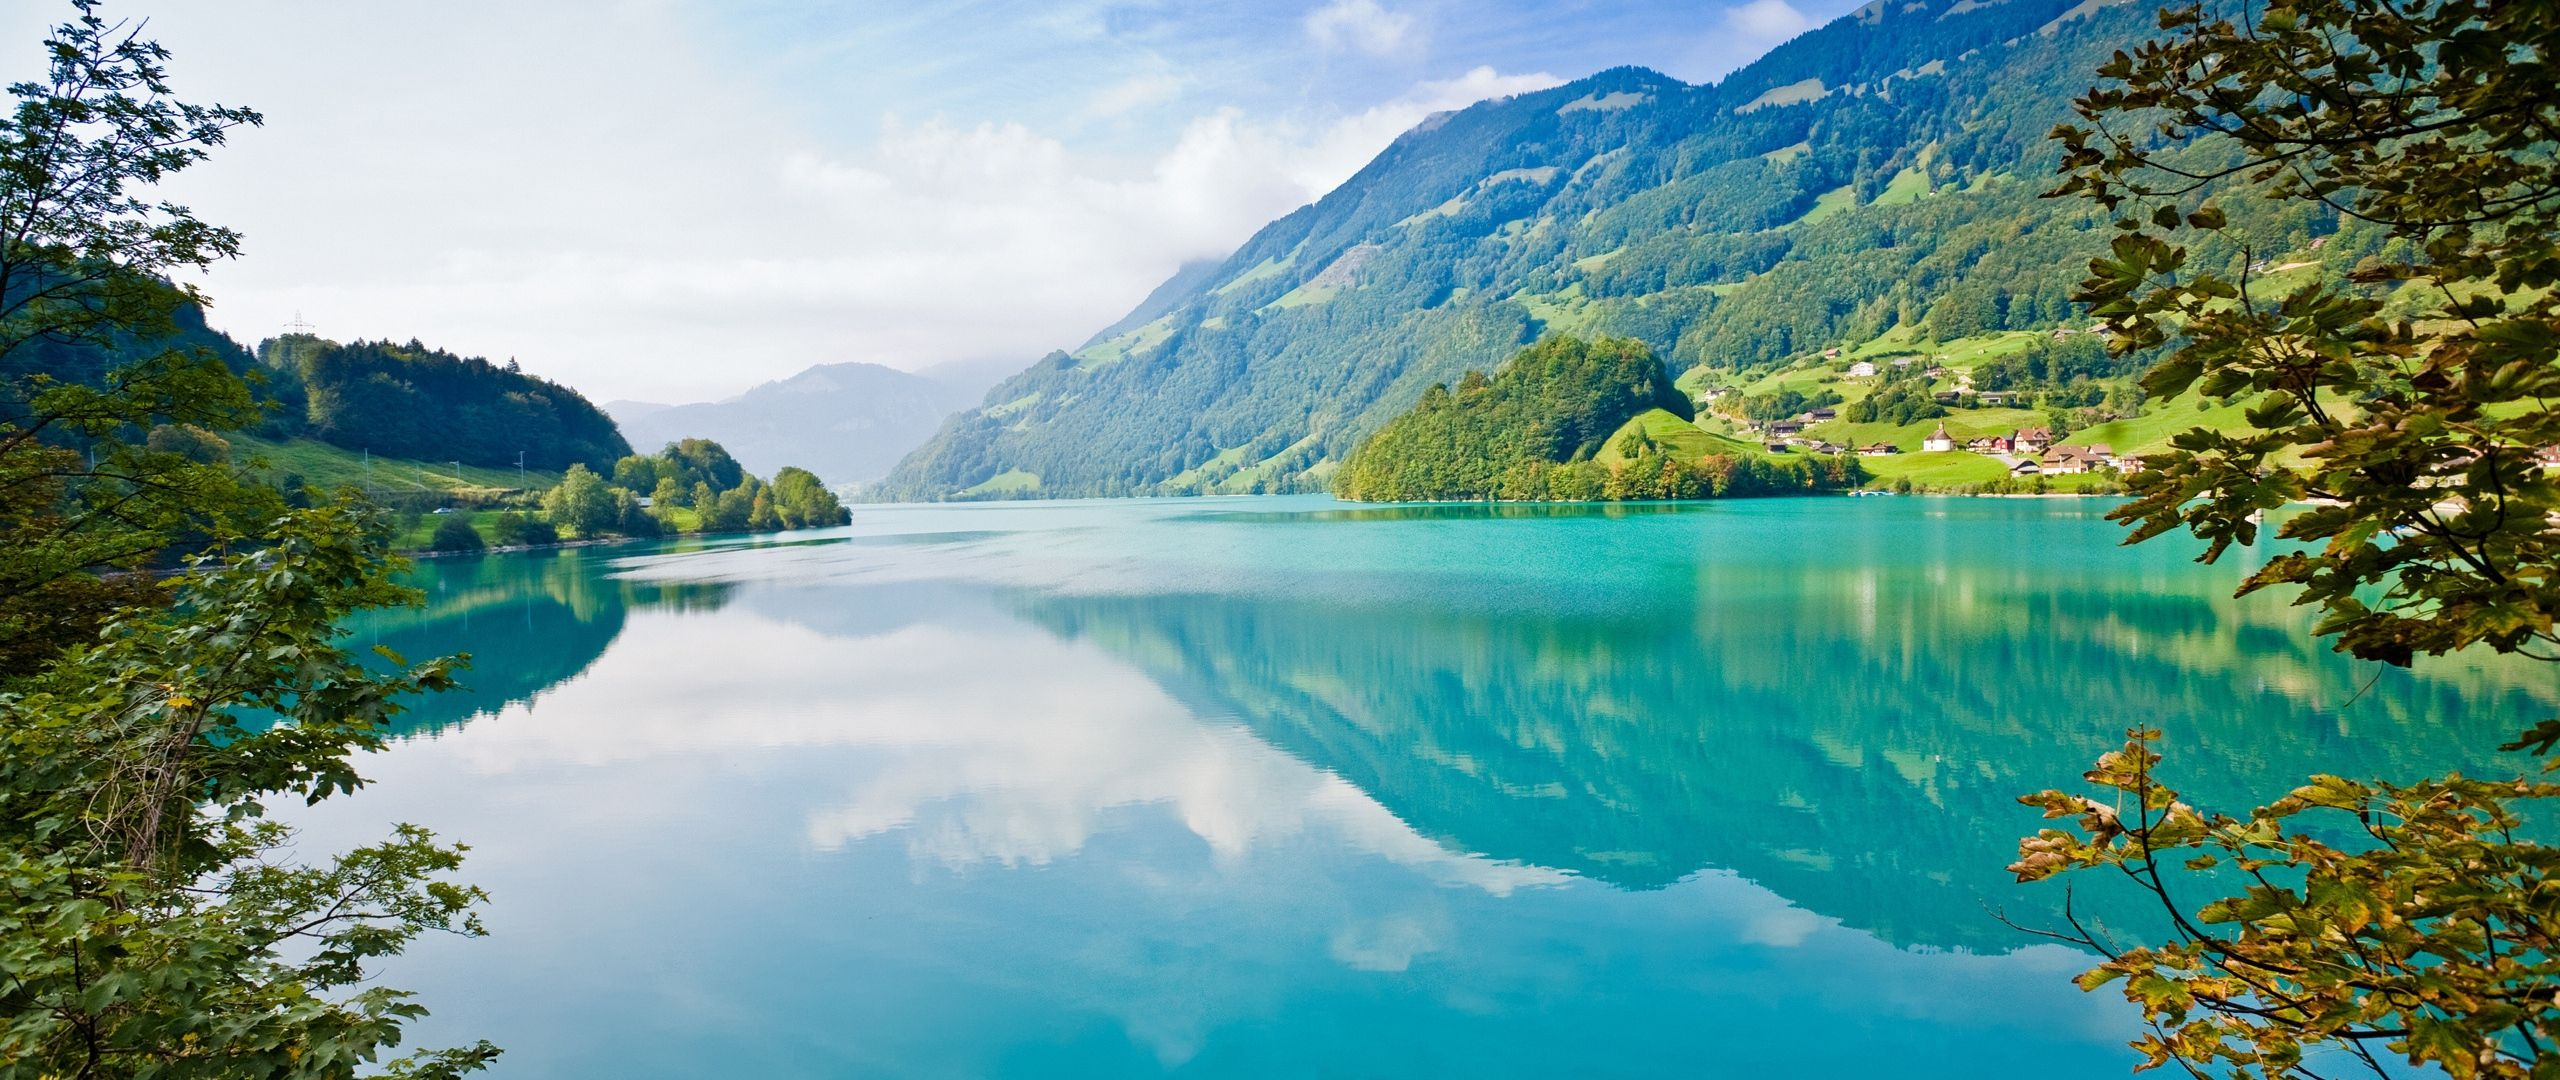 I love this pic! The green on the mountains and the blue of the water together...just beautiful!